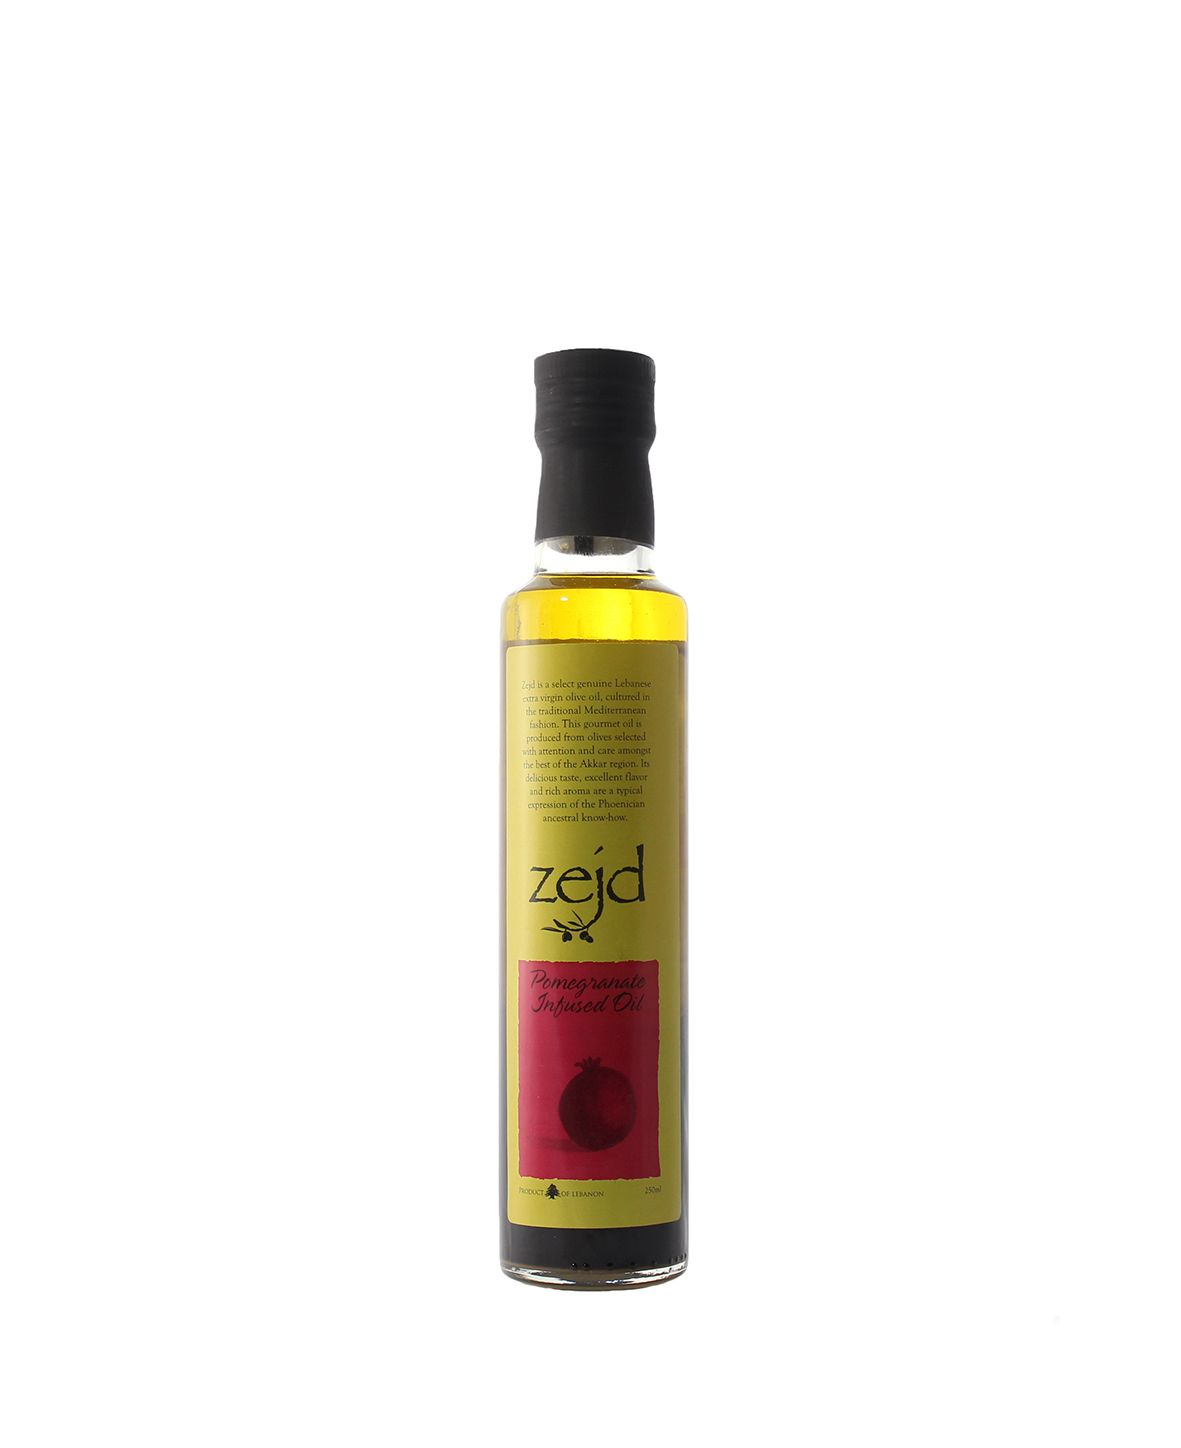 House of Zejd, Pomegranate Infused Oil, 250mL